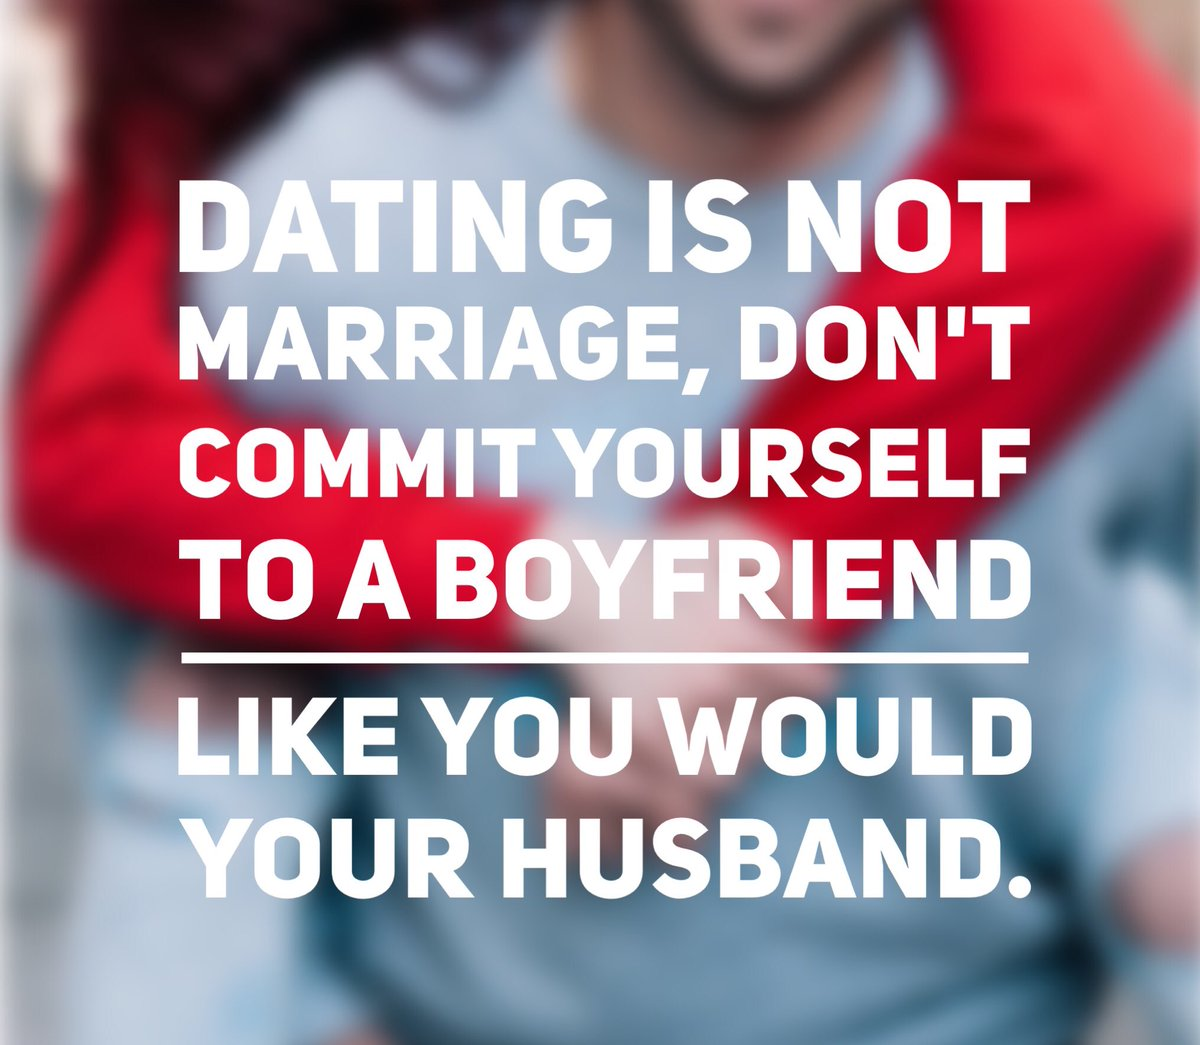 Dating is not marriage, you likely won&#39;t marry your bf, stop playing wifey roles. #love #DatingAdvice <br>http://pic.twitter.com/E3fnuFUci2